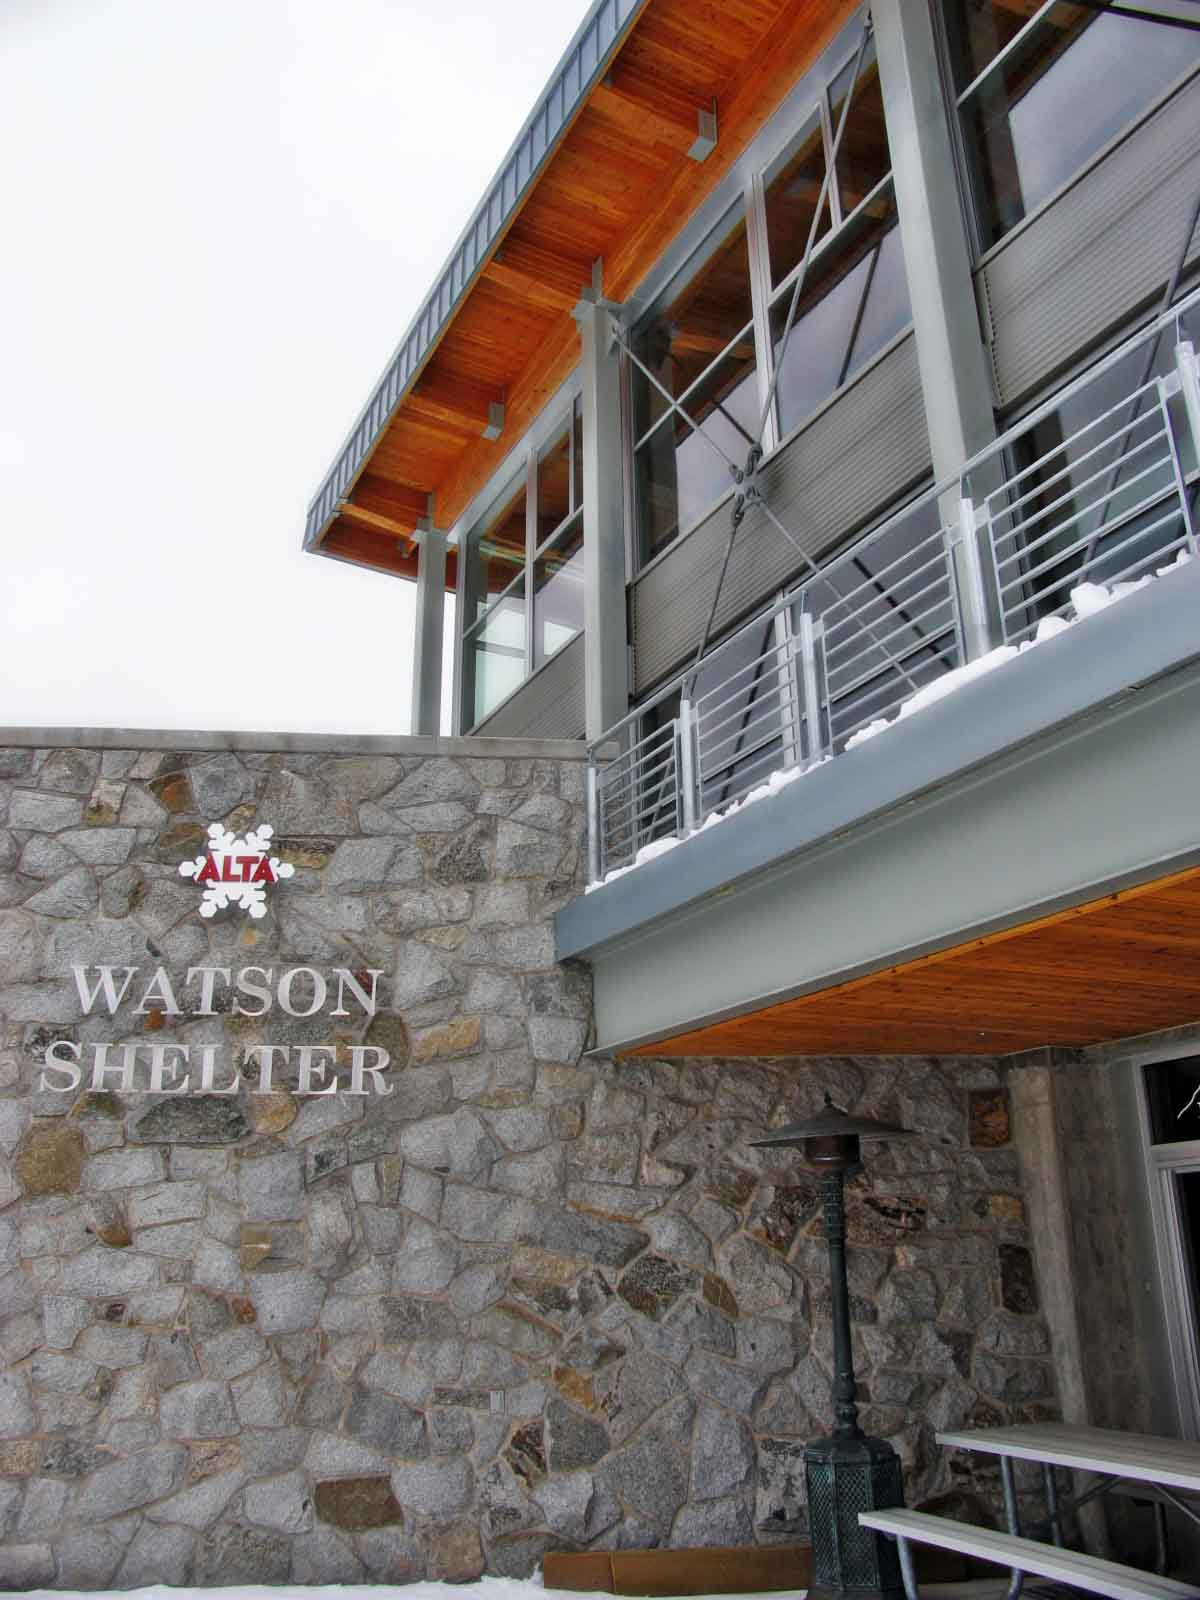 Watson Shelter building name in metal letters with the Alta Ski Resort logo above fixed to a stone wall of the building.